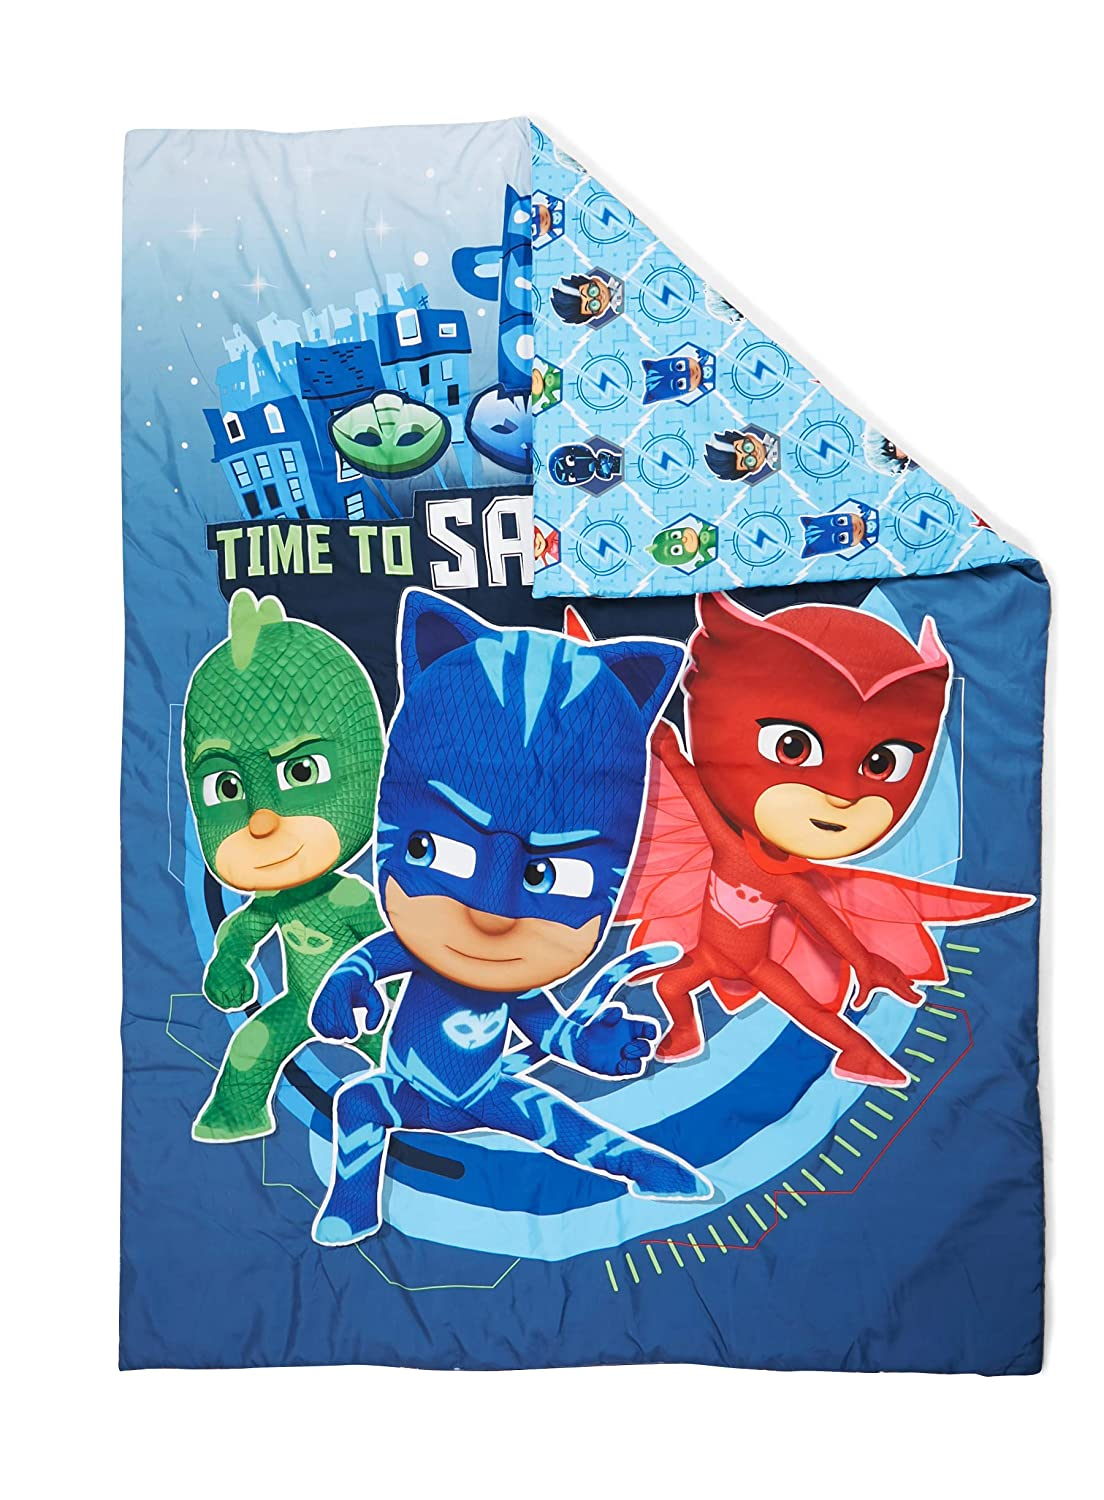 d0511501e119 Amazon.com  PJ Masks Time to Save The Day Toddler Bed Comforter ...